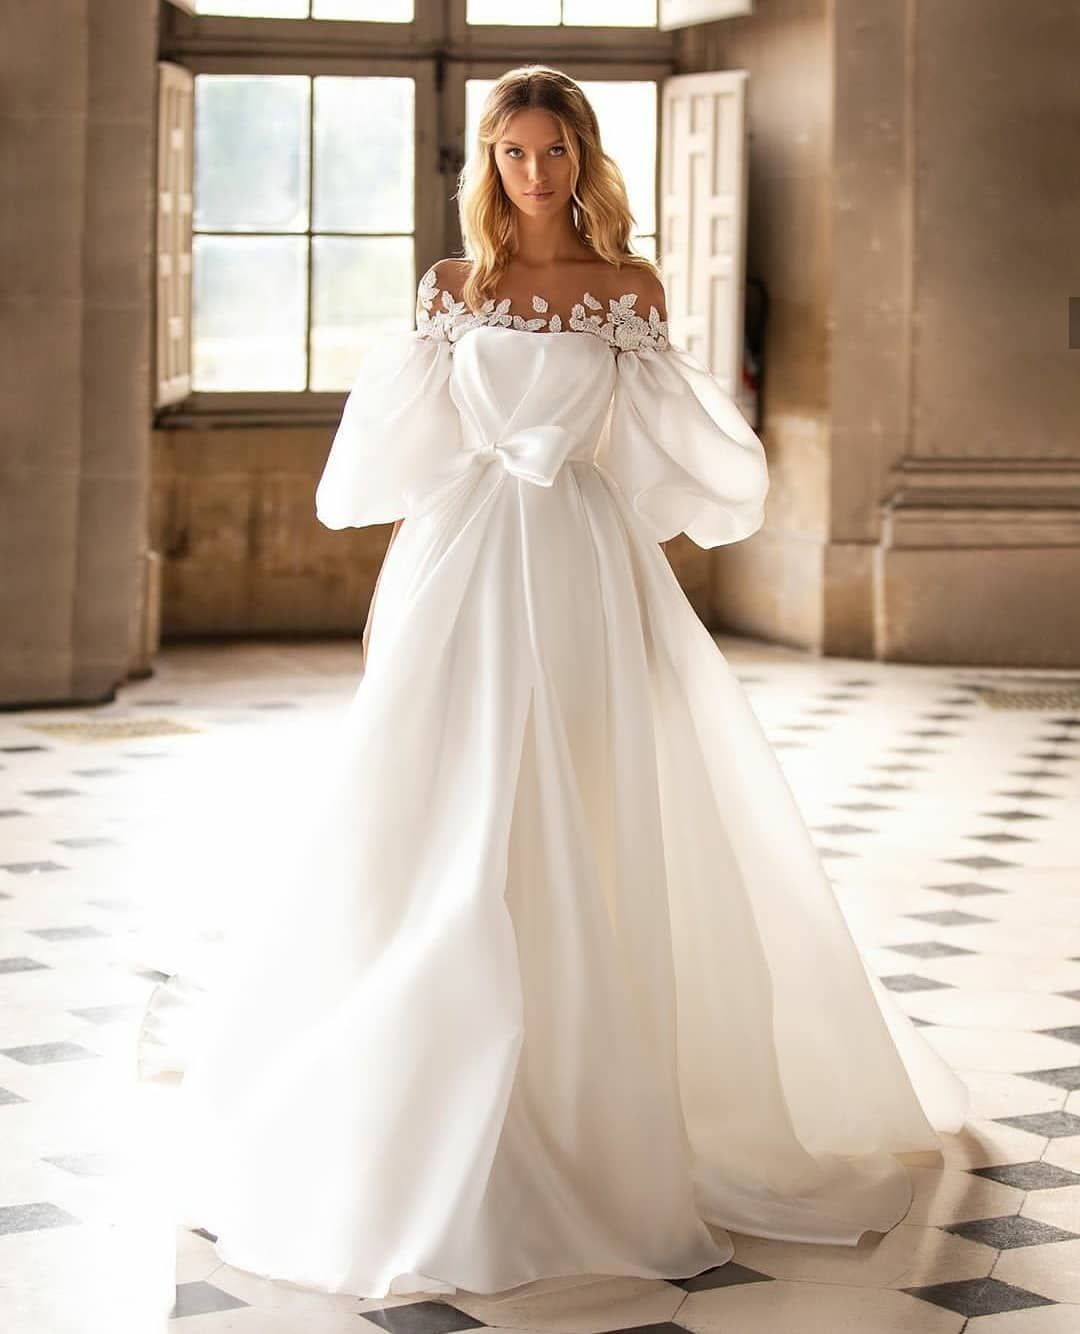 25 Unique Wedding Ideas To Get Inspire: 25 Unique Wedding Dresses Will Inspire You In 2020 In 2020